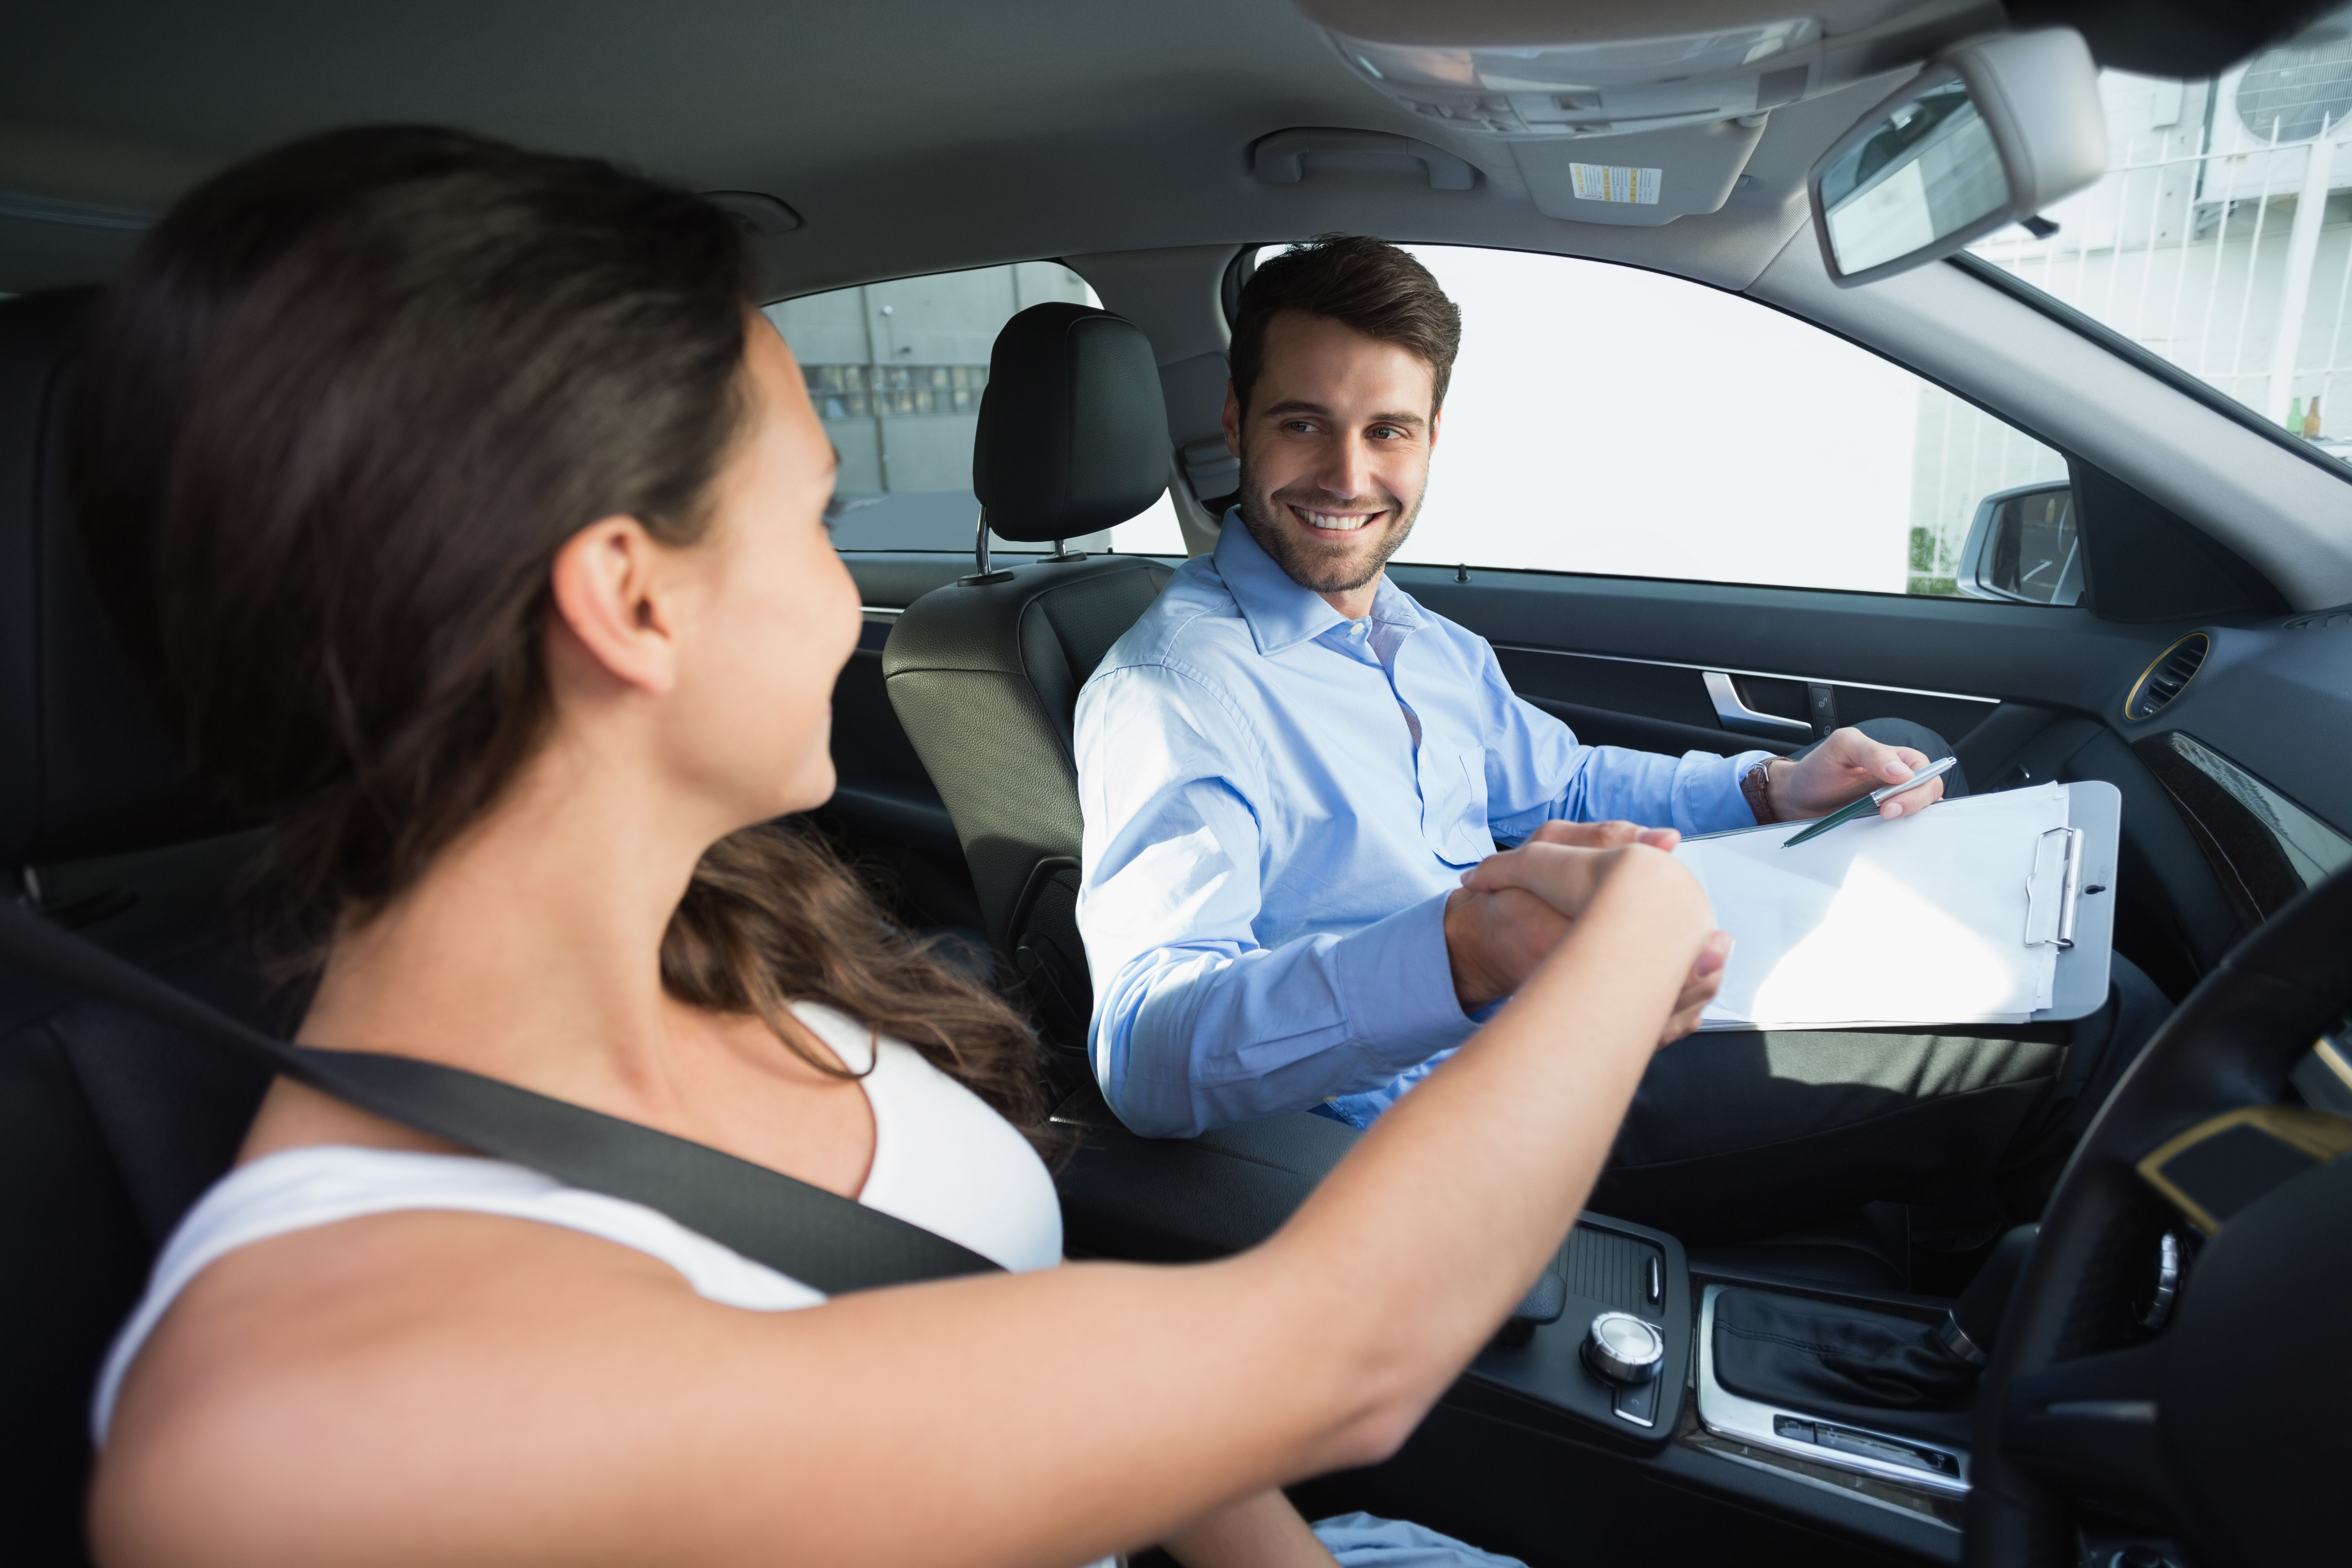 FooteWork Produces Higher Pass Rates on MVD Driving Test